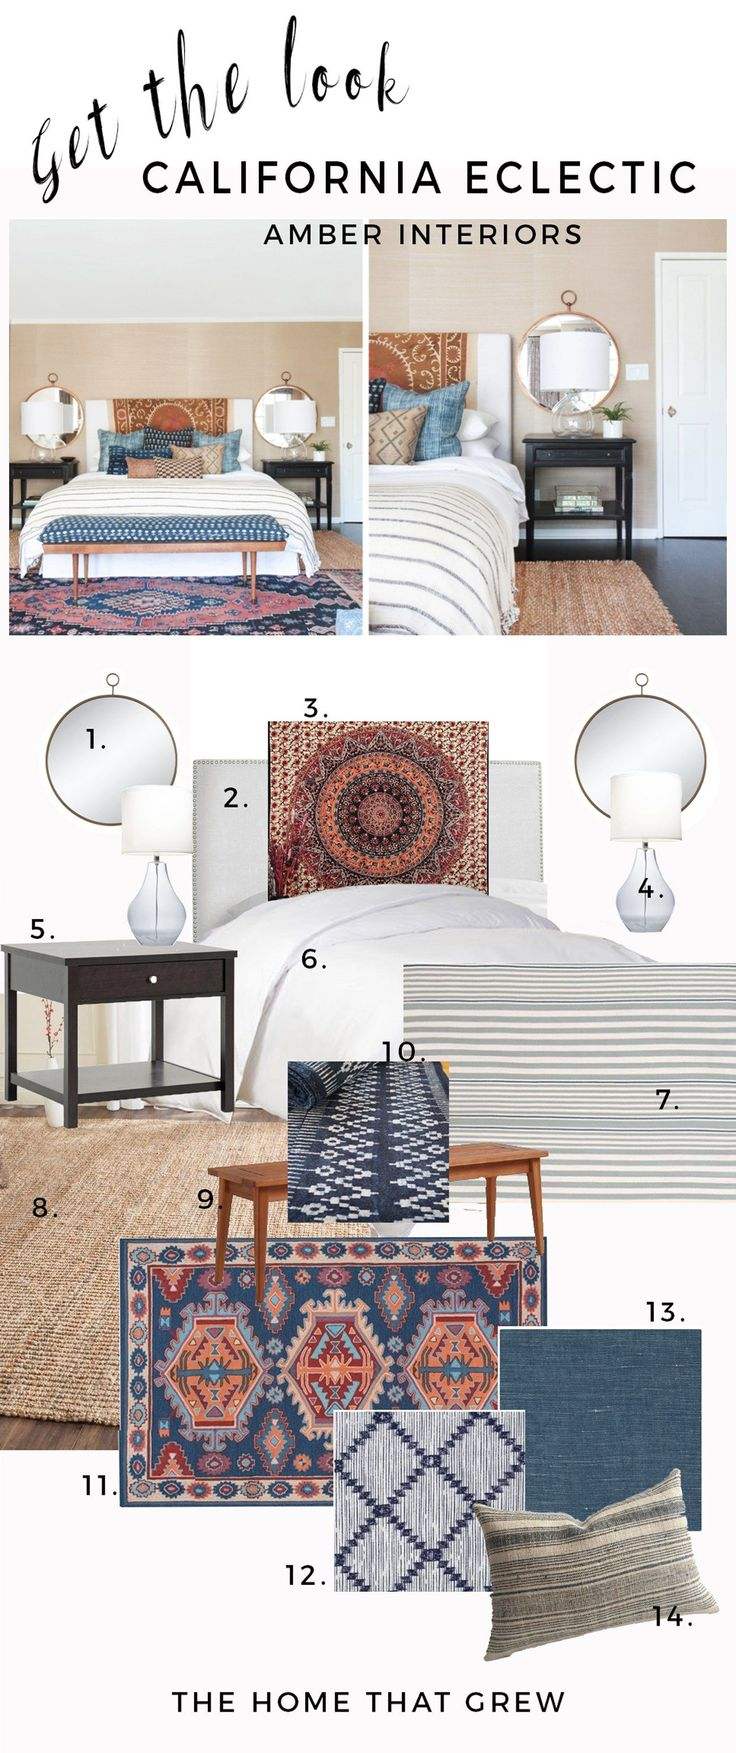 Inspired by this California Eclectic Master Bedroom by Amber Interiors. This room is a perfect mix of bohemian, eclectic, a little mid century modern even! Indigo textiles and layered pillows and rugs warms this boho space. Click through to score all the goods.